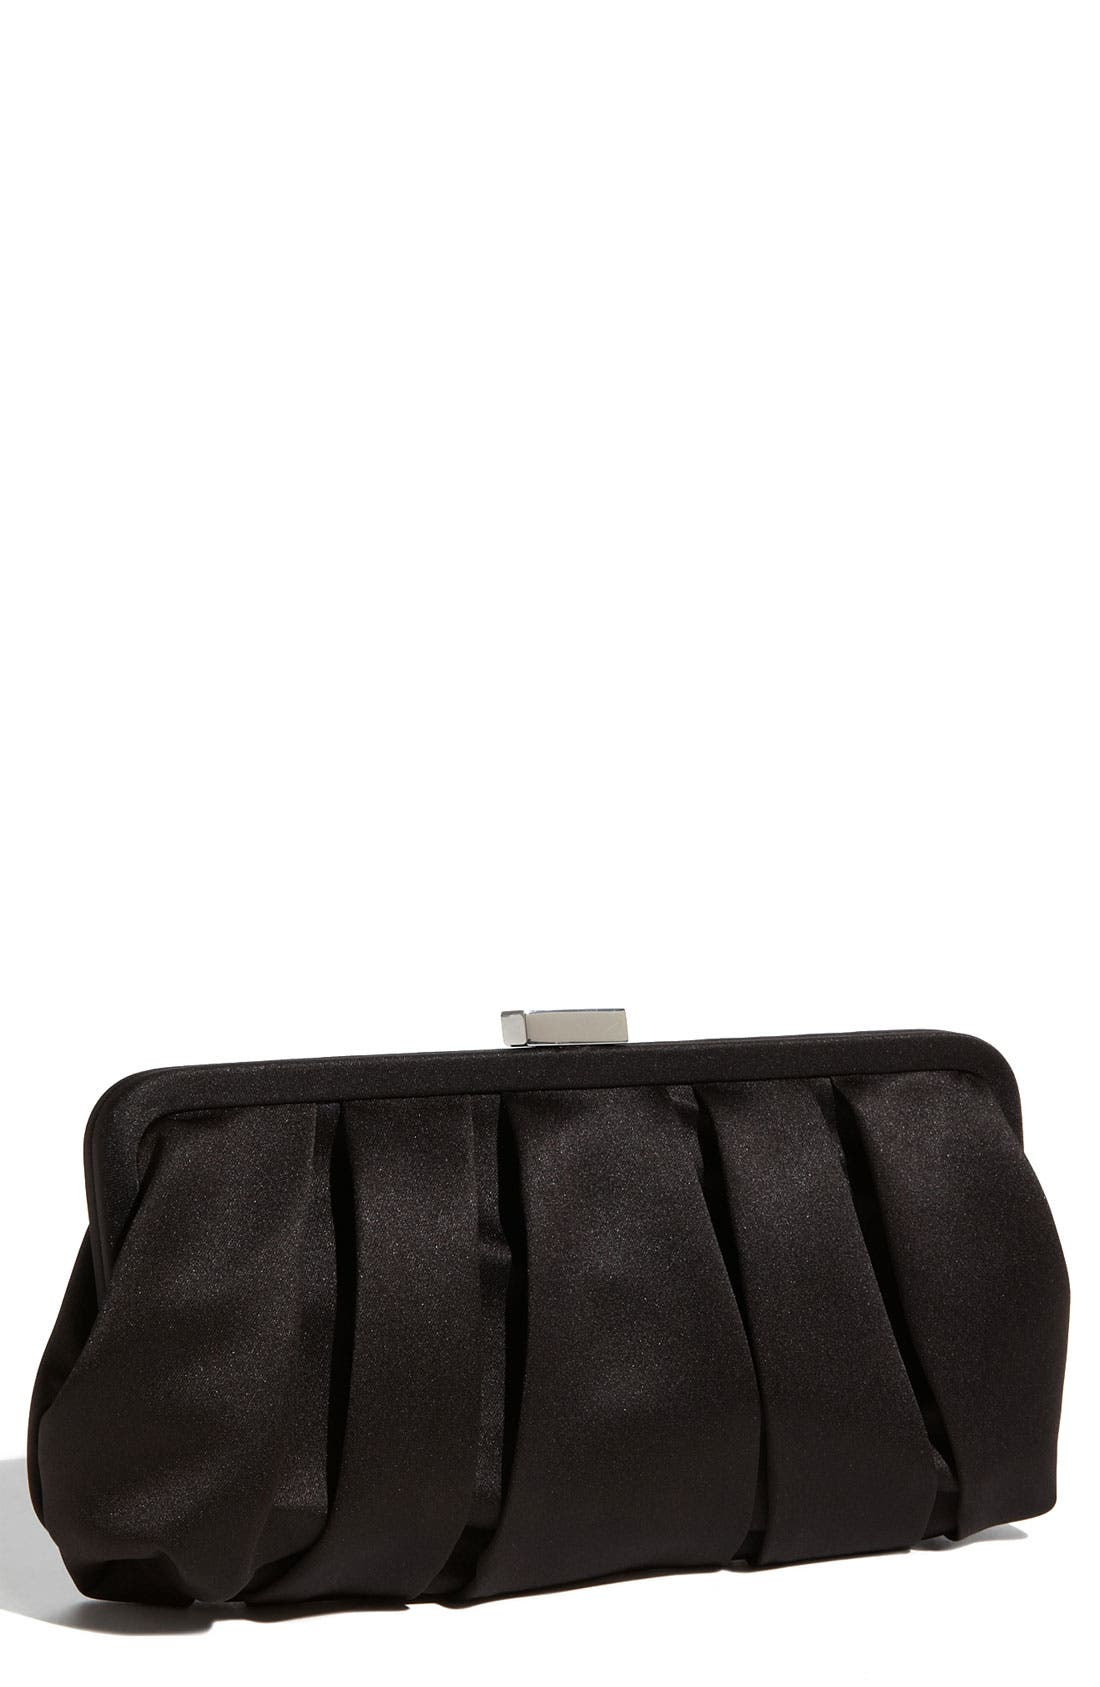 Main Image - Nina 'Logan' Satin Clutch